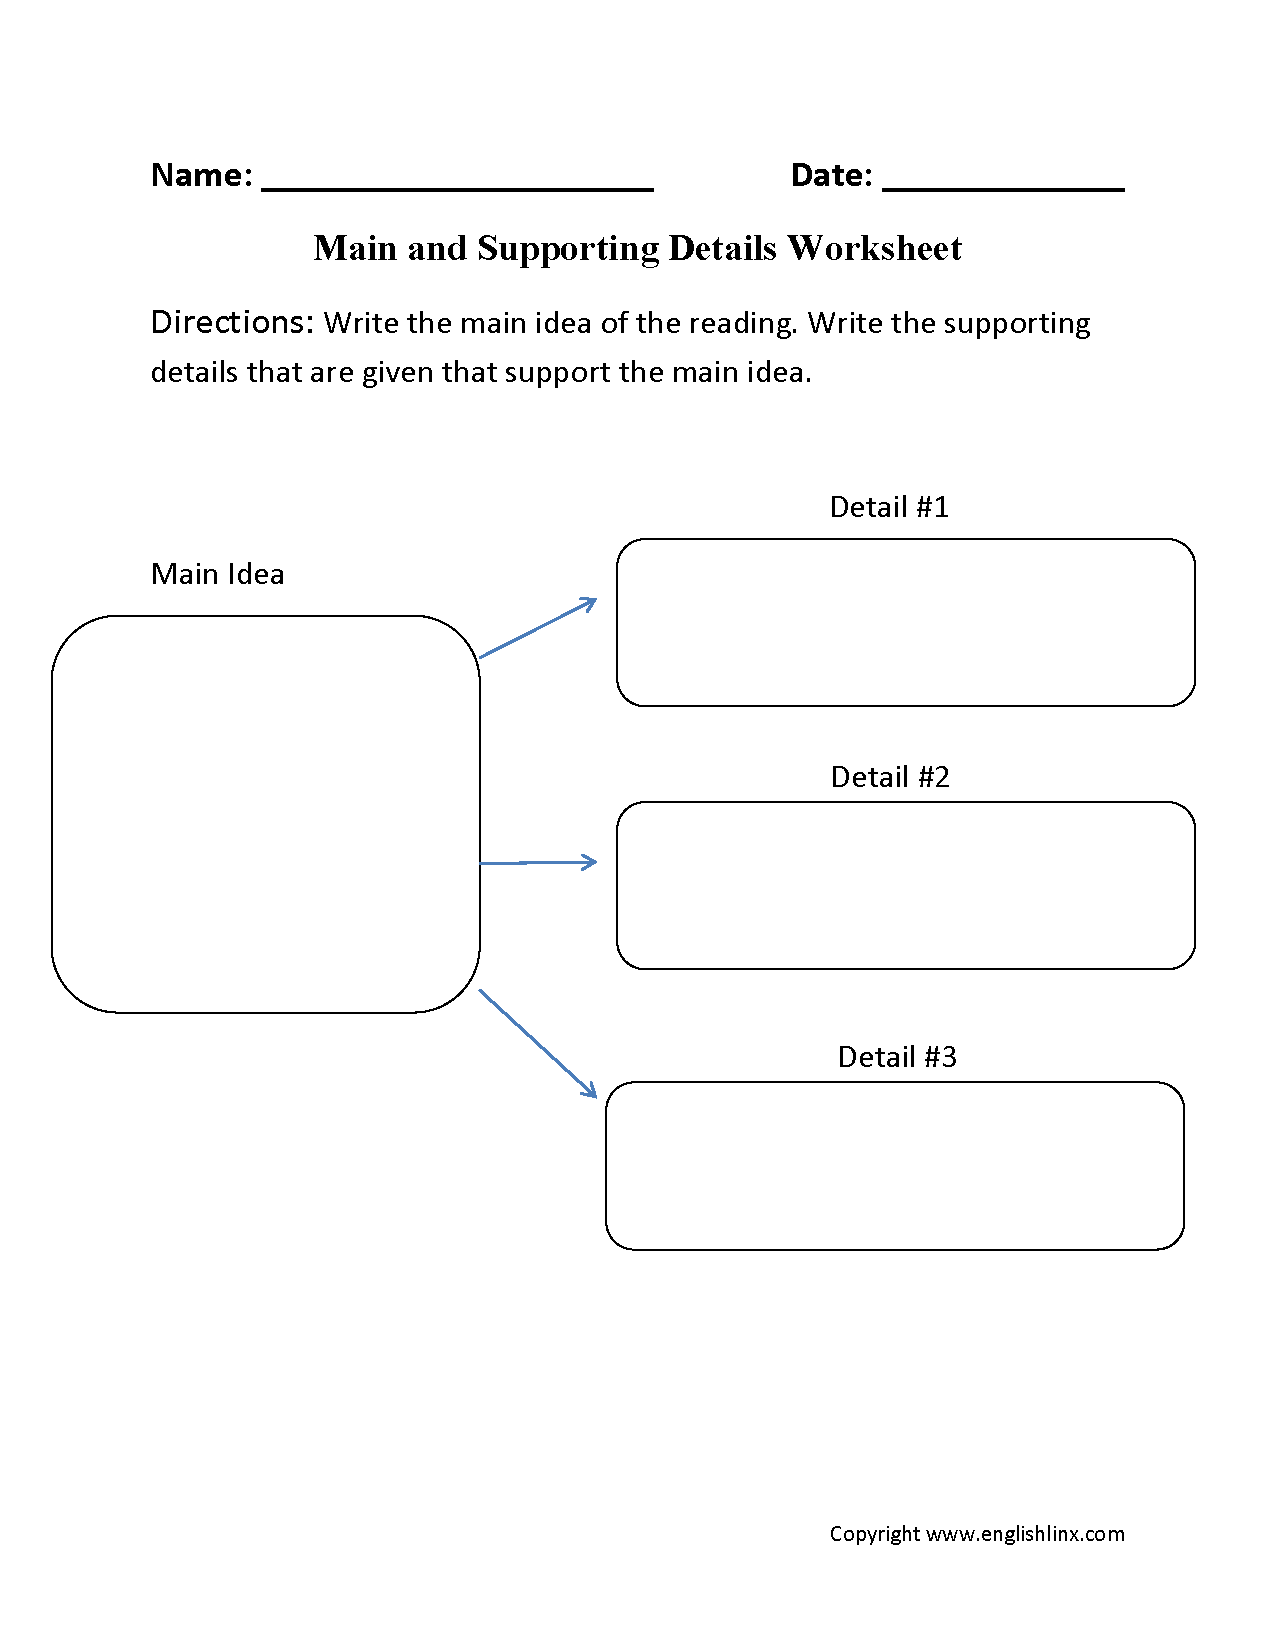 Worksheets Main Idea And Supporting Details Worksheets main idea worksheets and supporting details worksheet worksheet